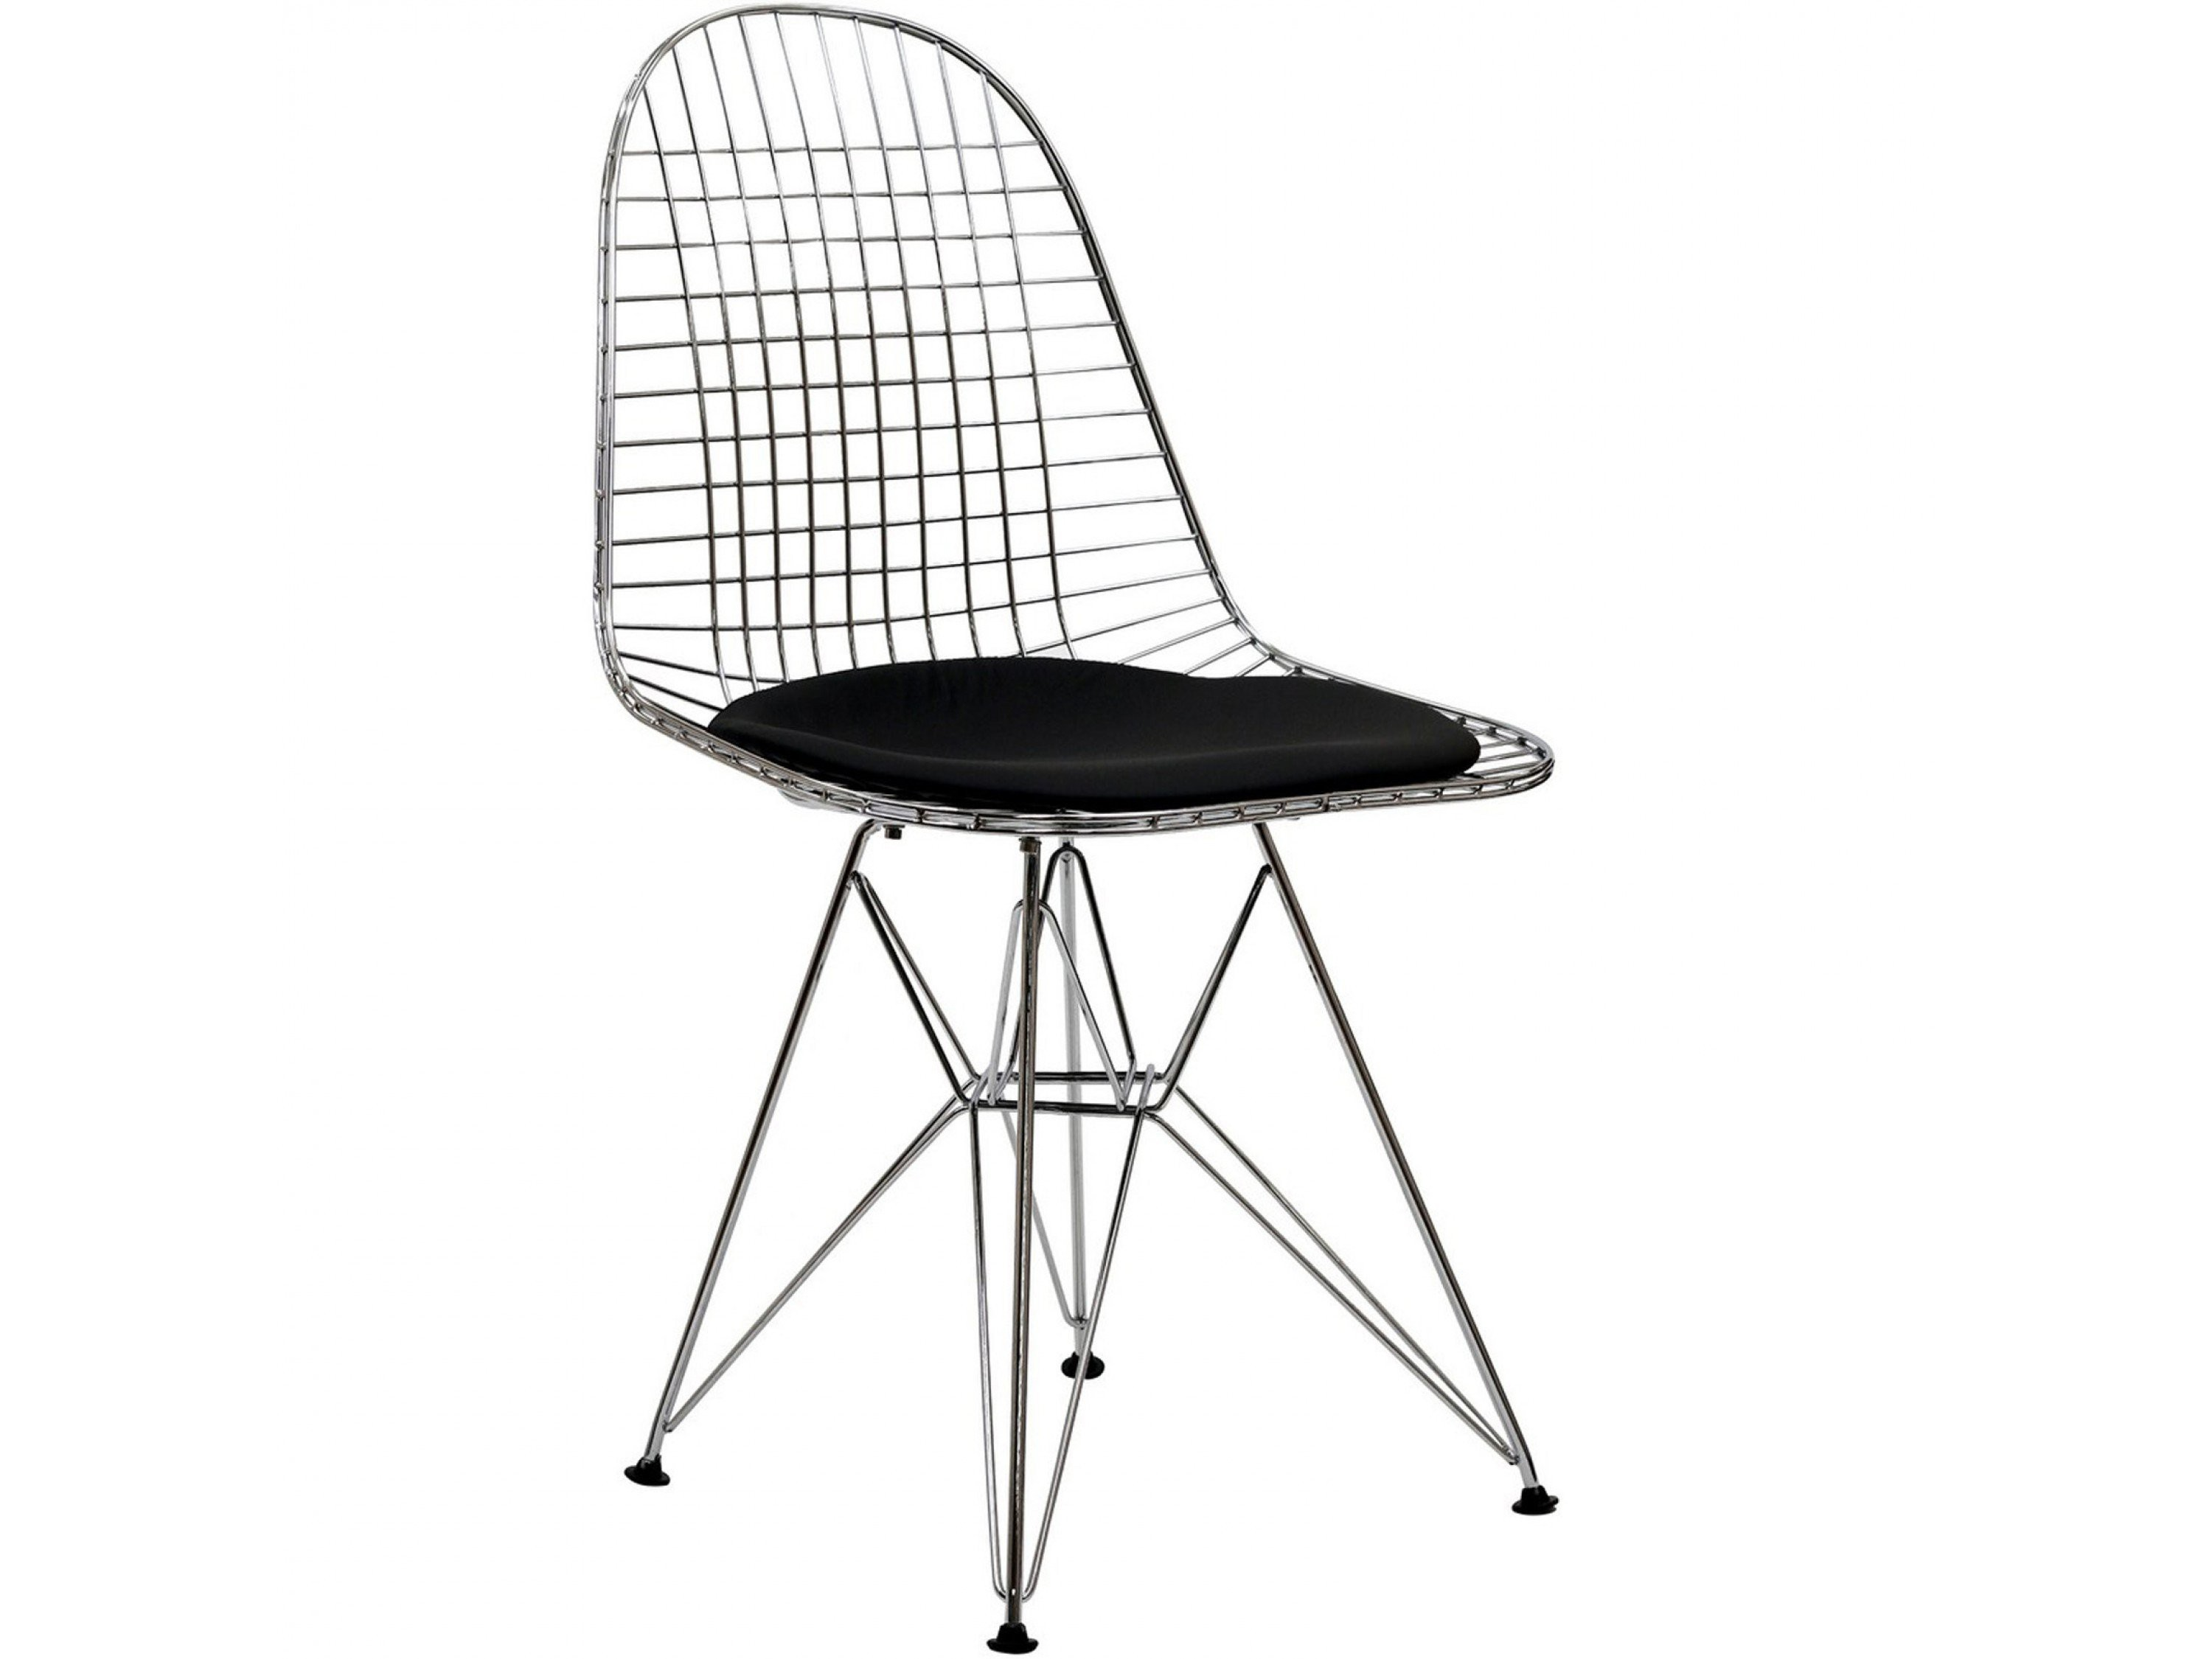 Charles eames dining chair dkr design dining chair for Chaise eames metal